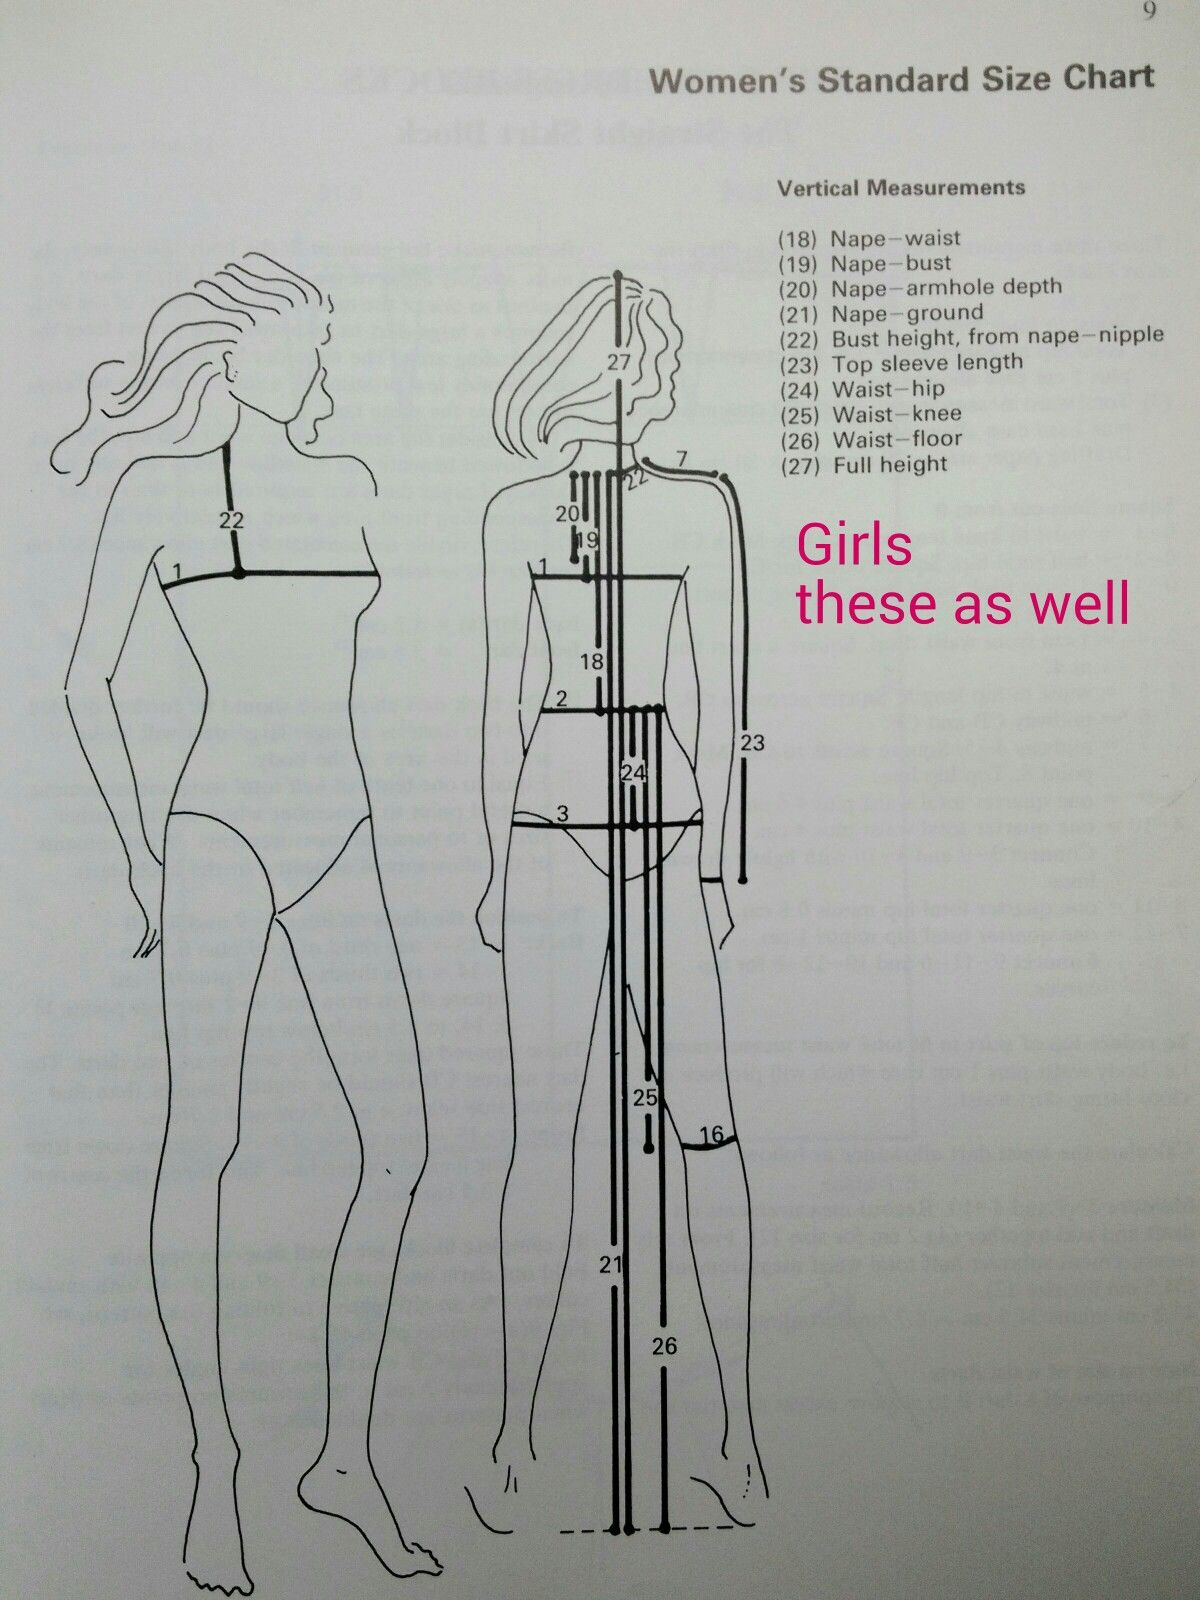 Part of measurements required for the girls in cm please